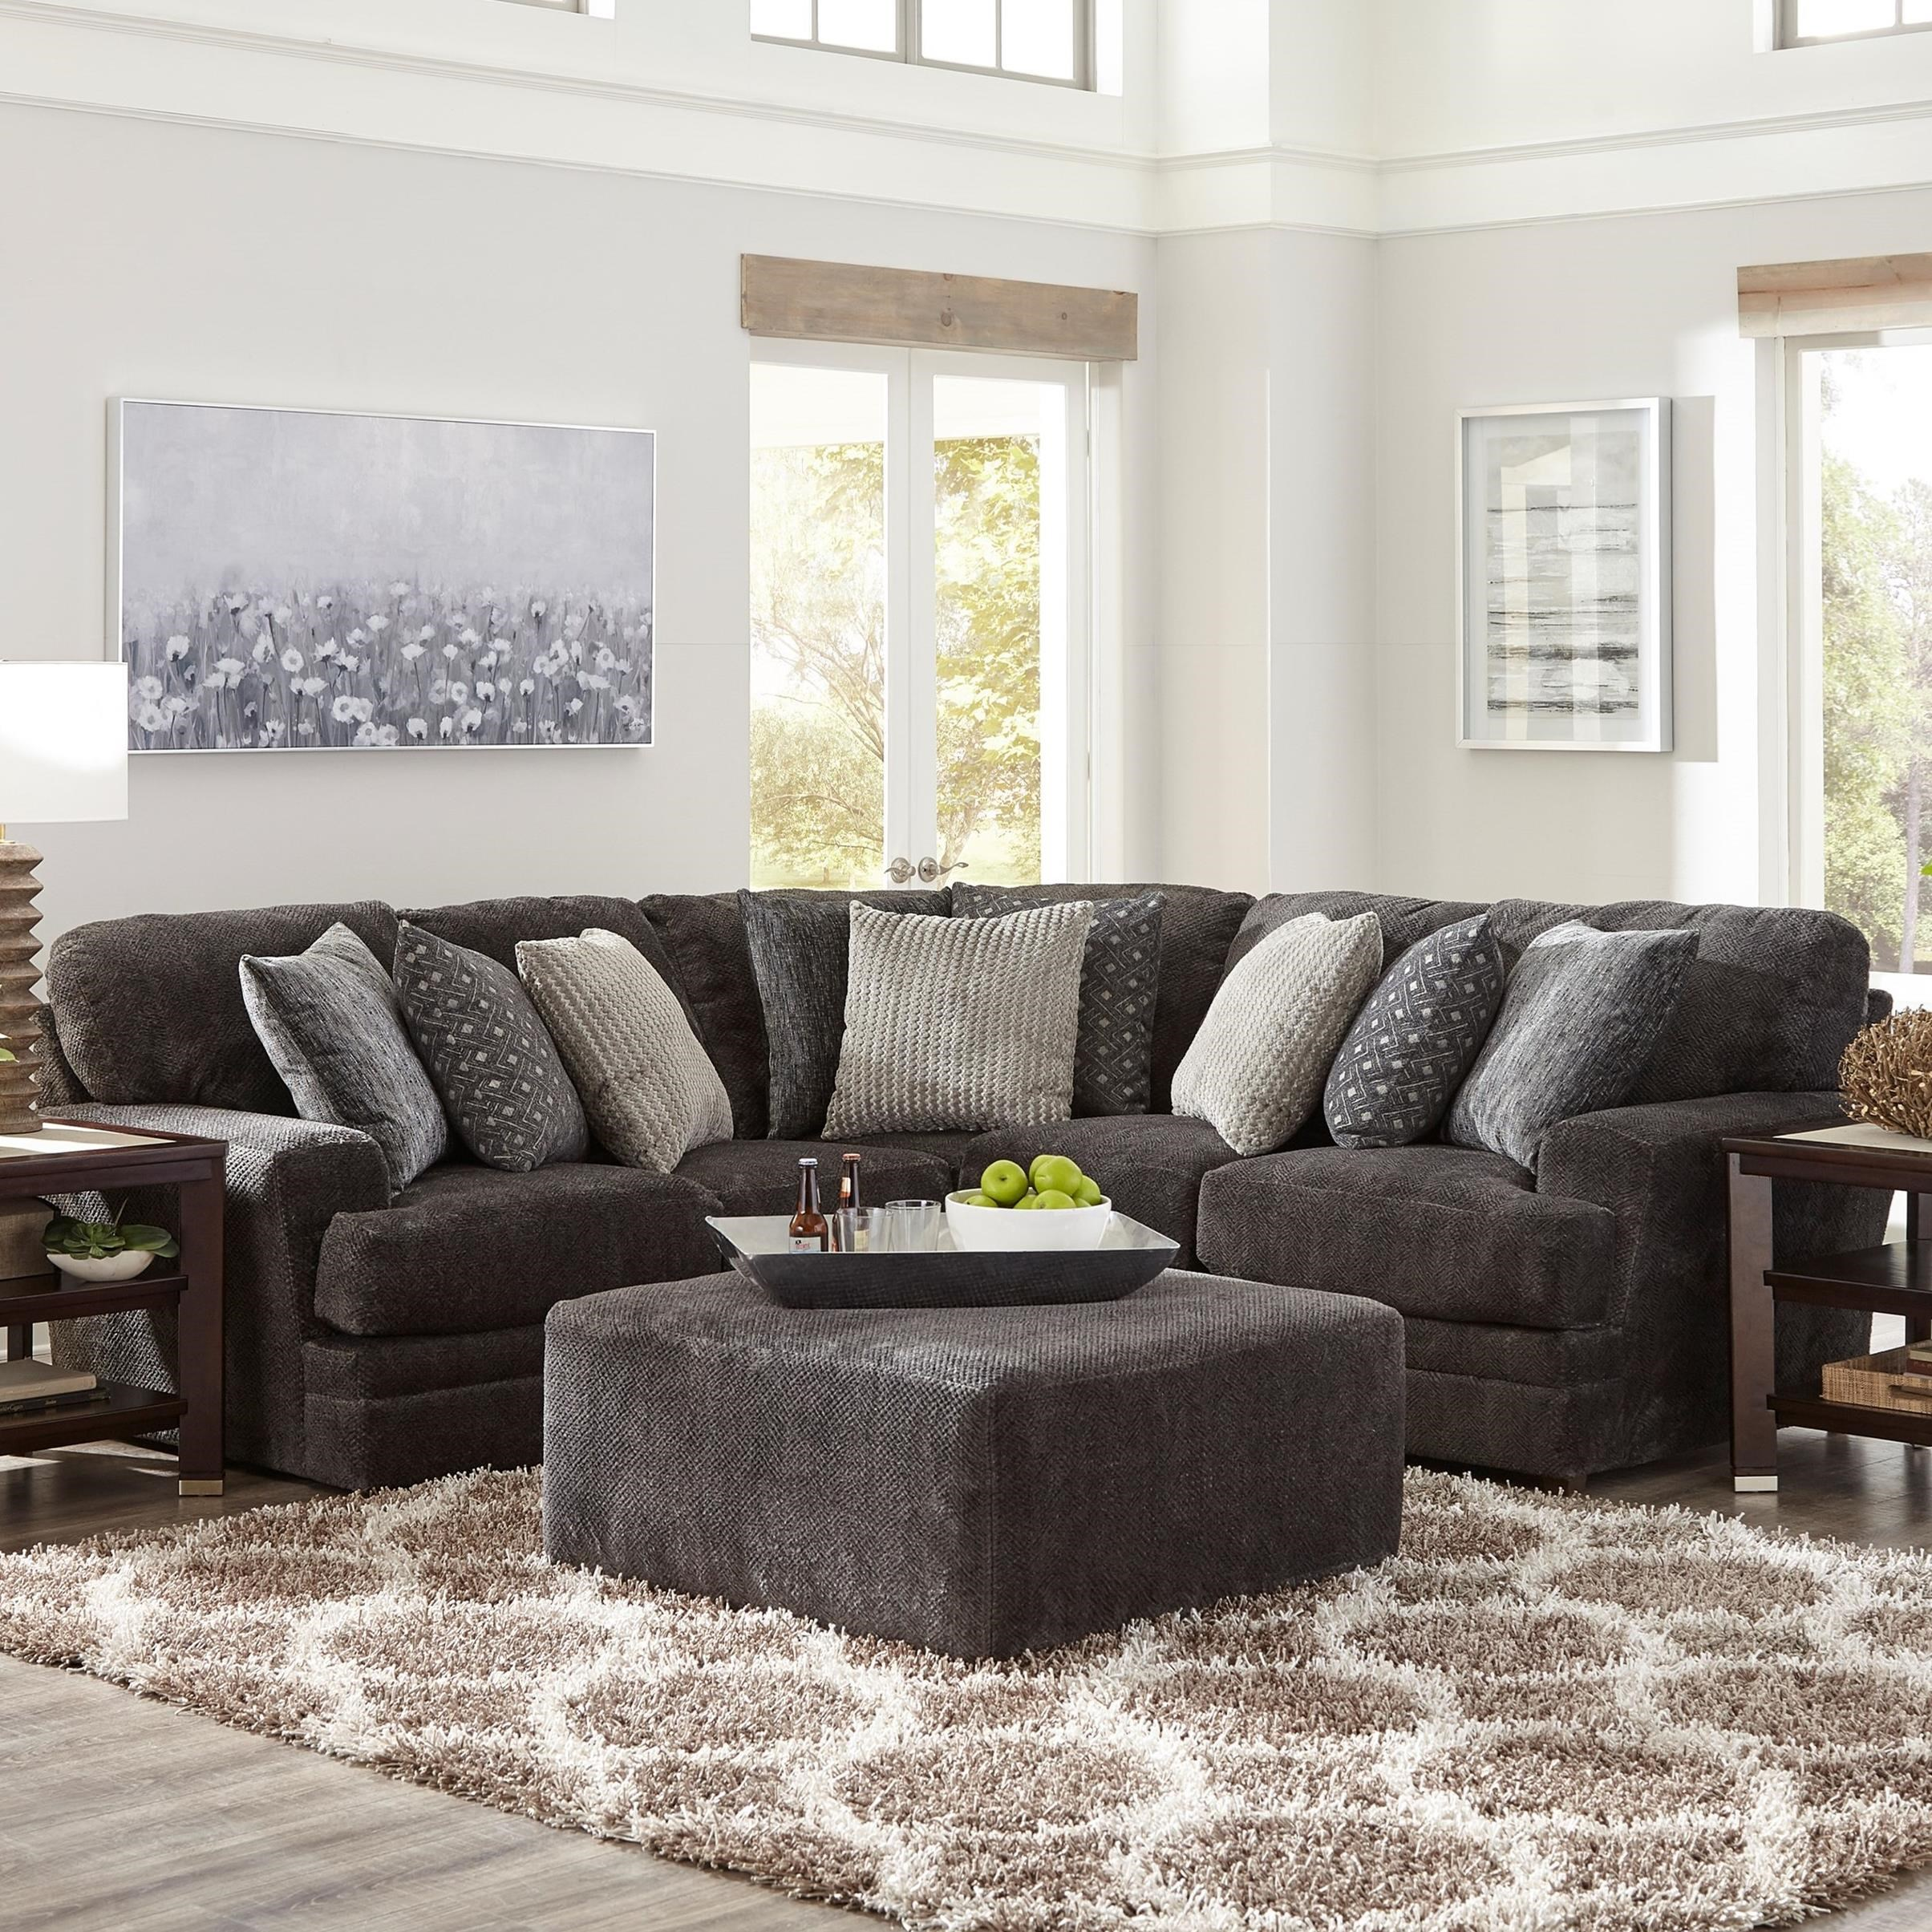 Mammoth Stationary Living Room Group by Jackson Furniture at Bullard Furniture